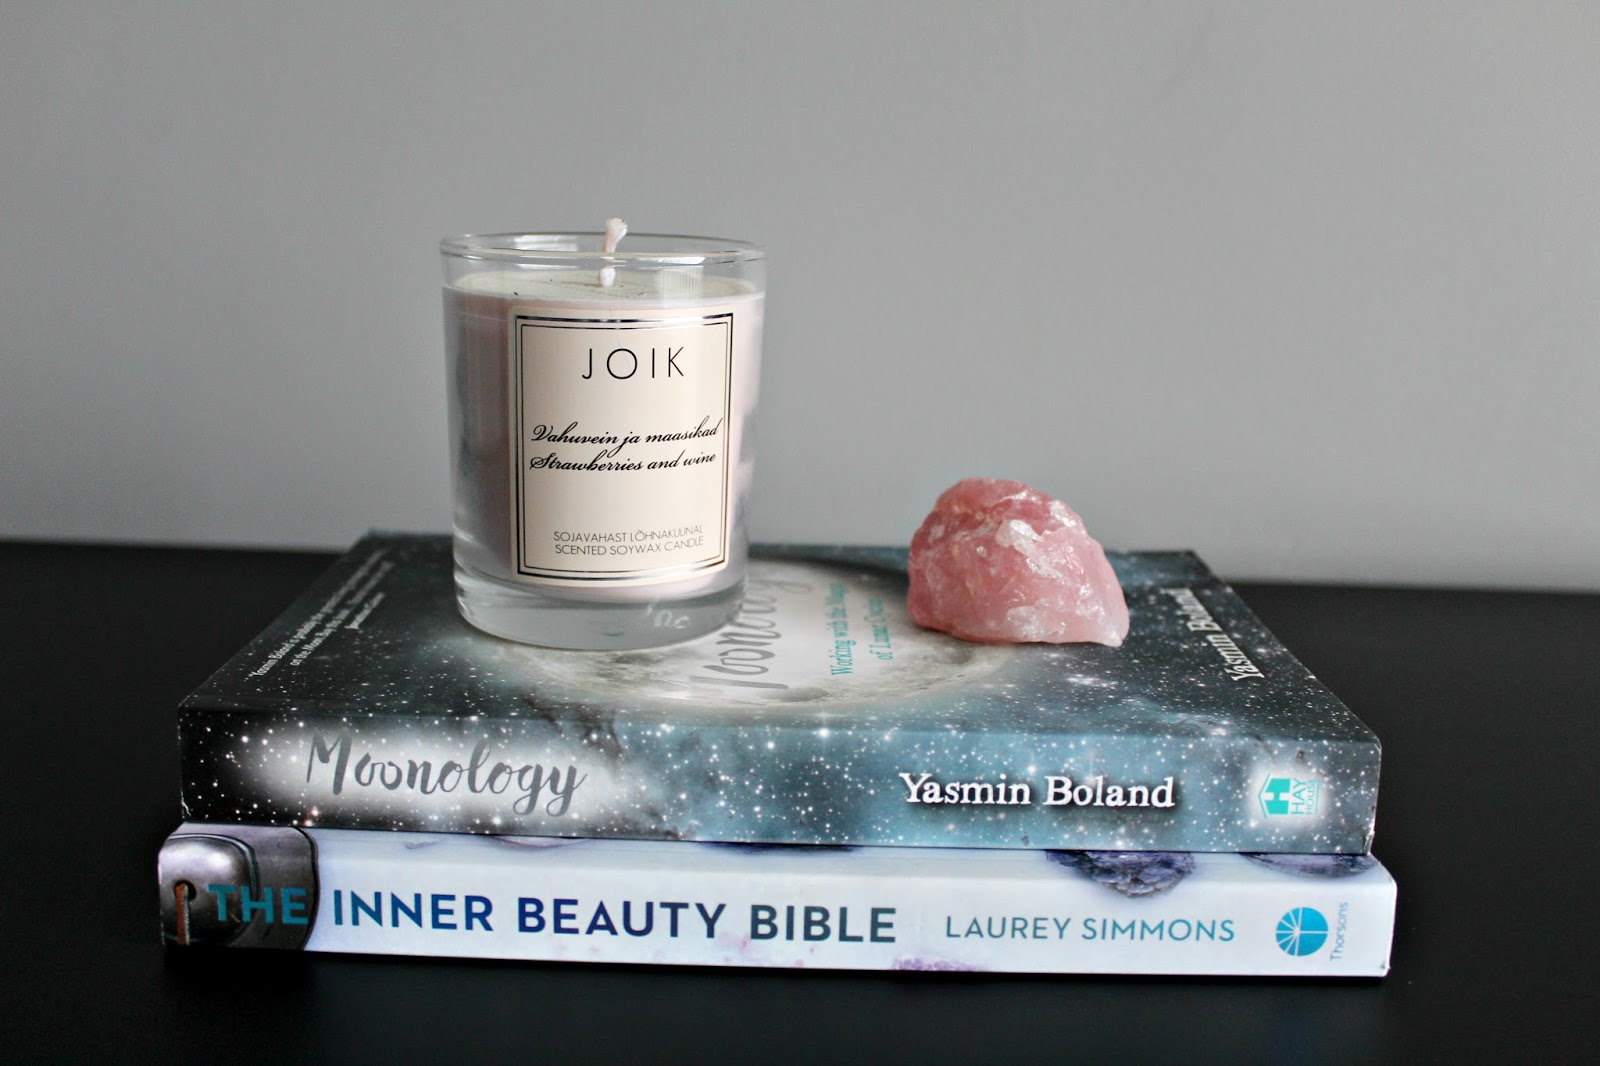 Joik Soy Wax Scented Candle